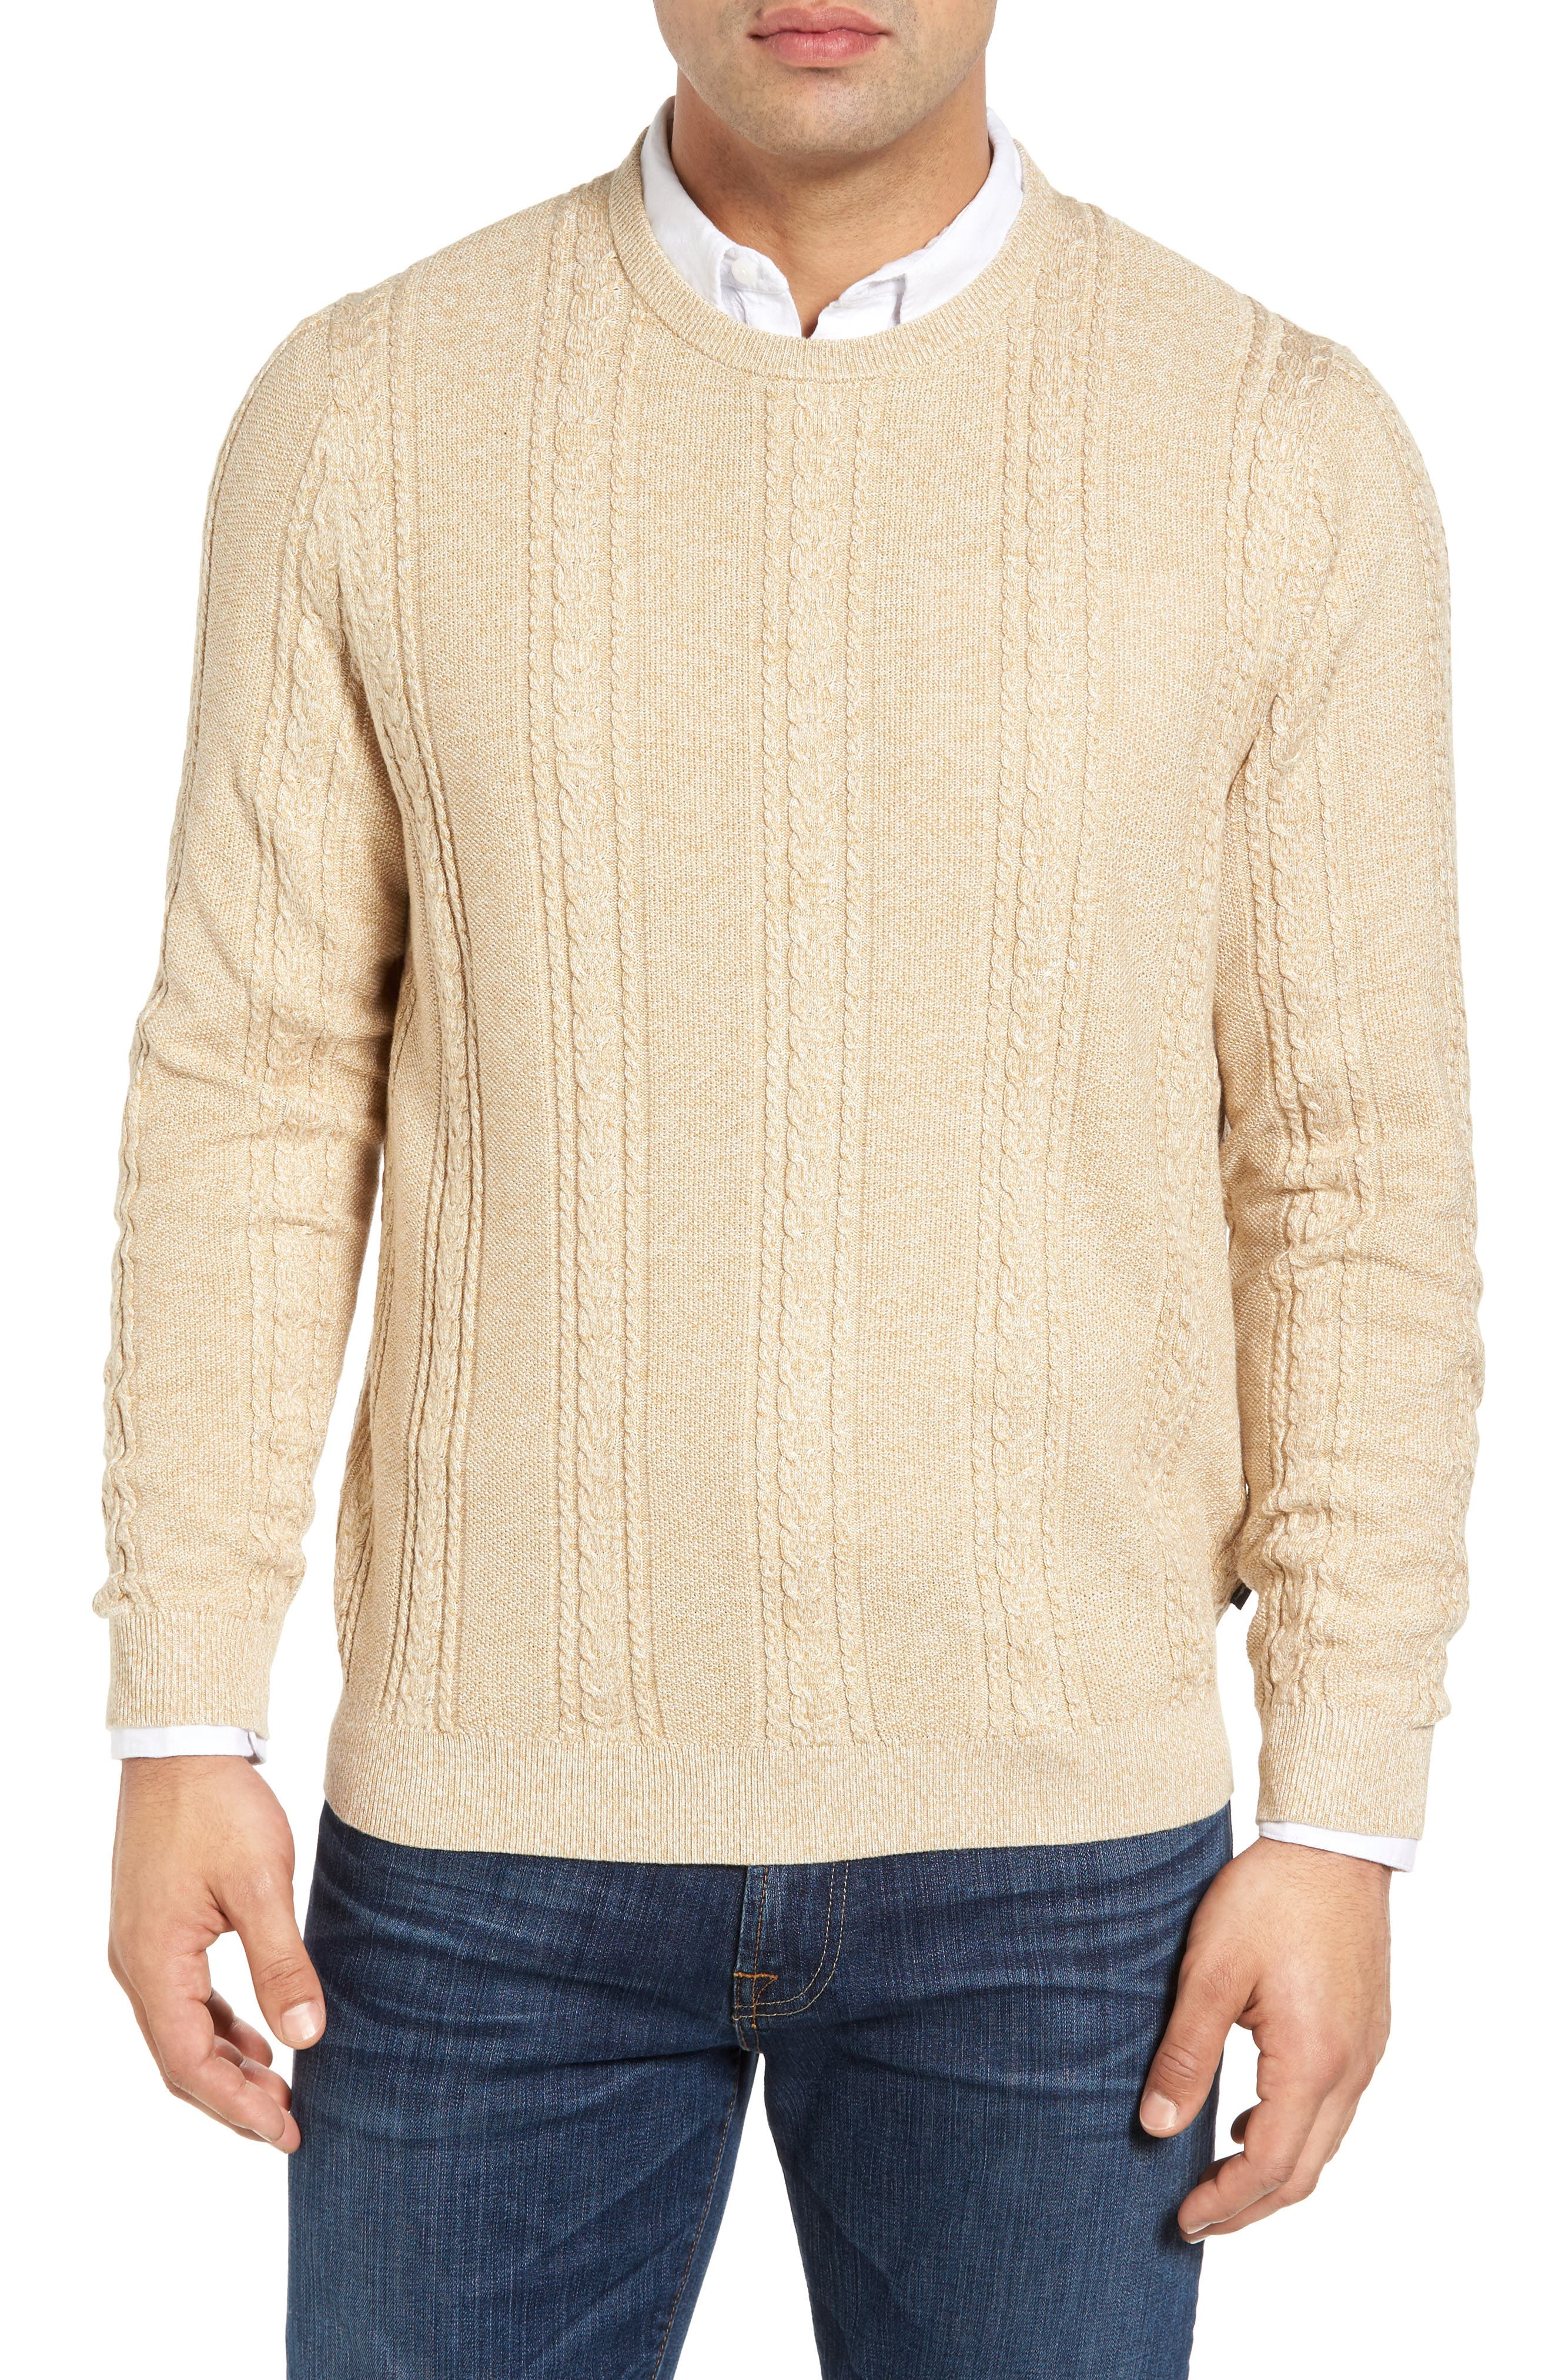 Main Image - Tommy Bahama Marled Silk Blend Sweater